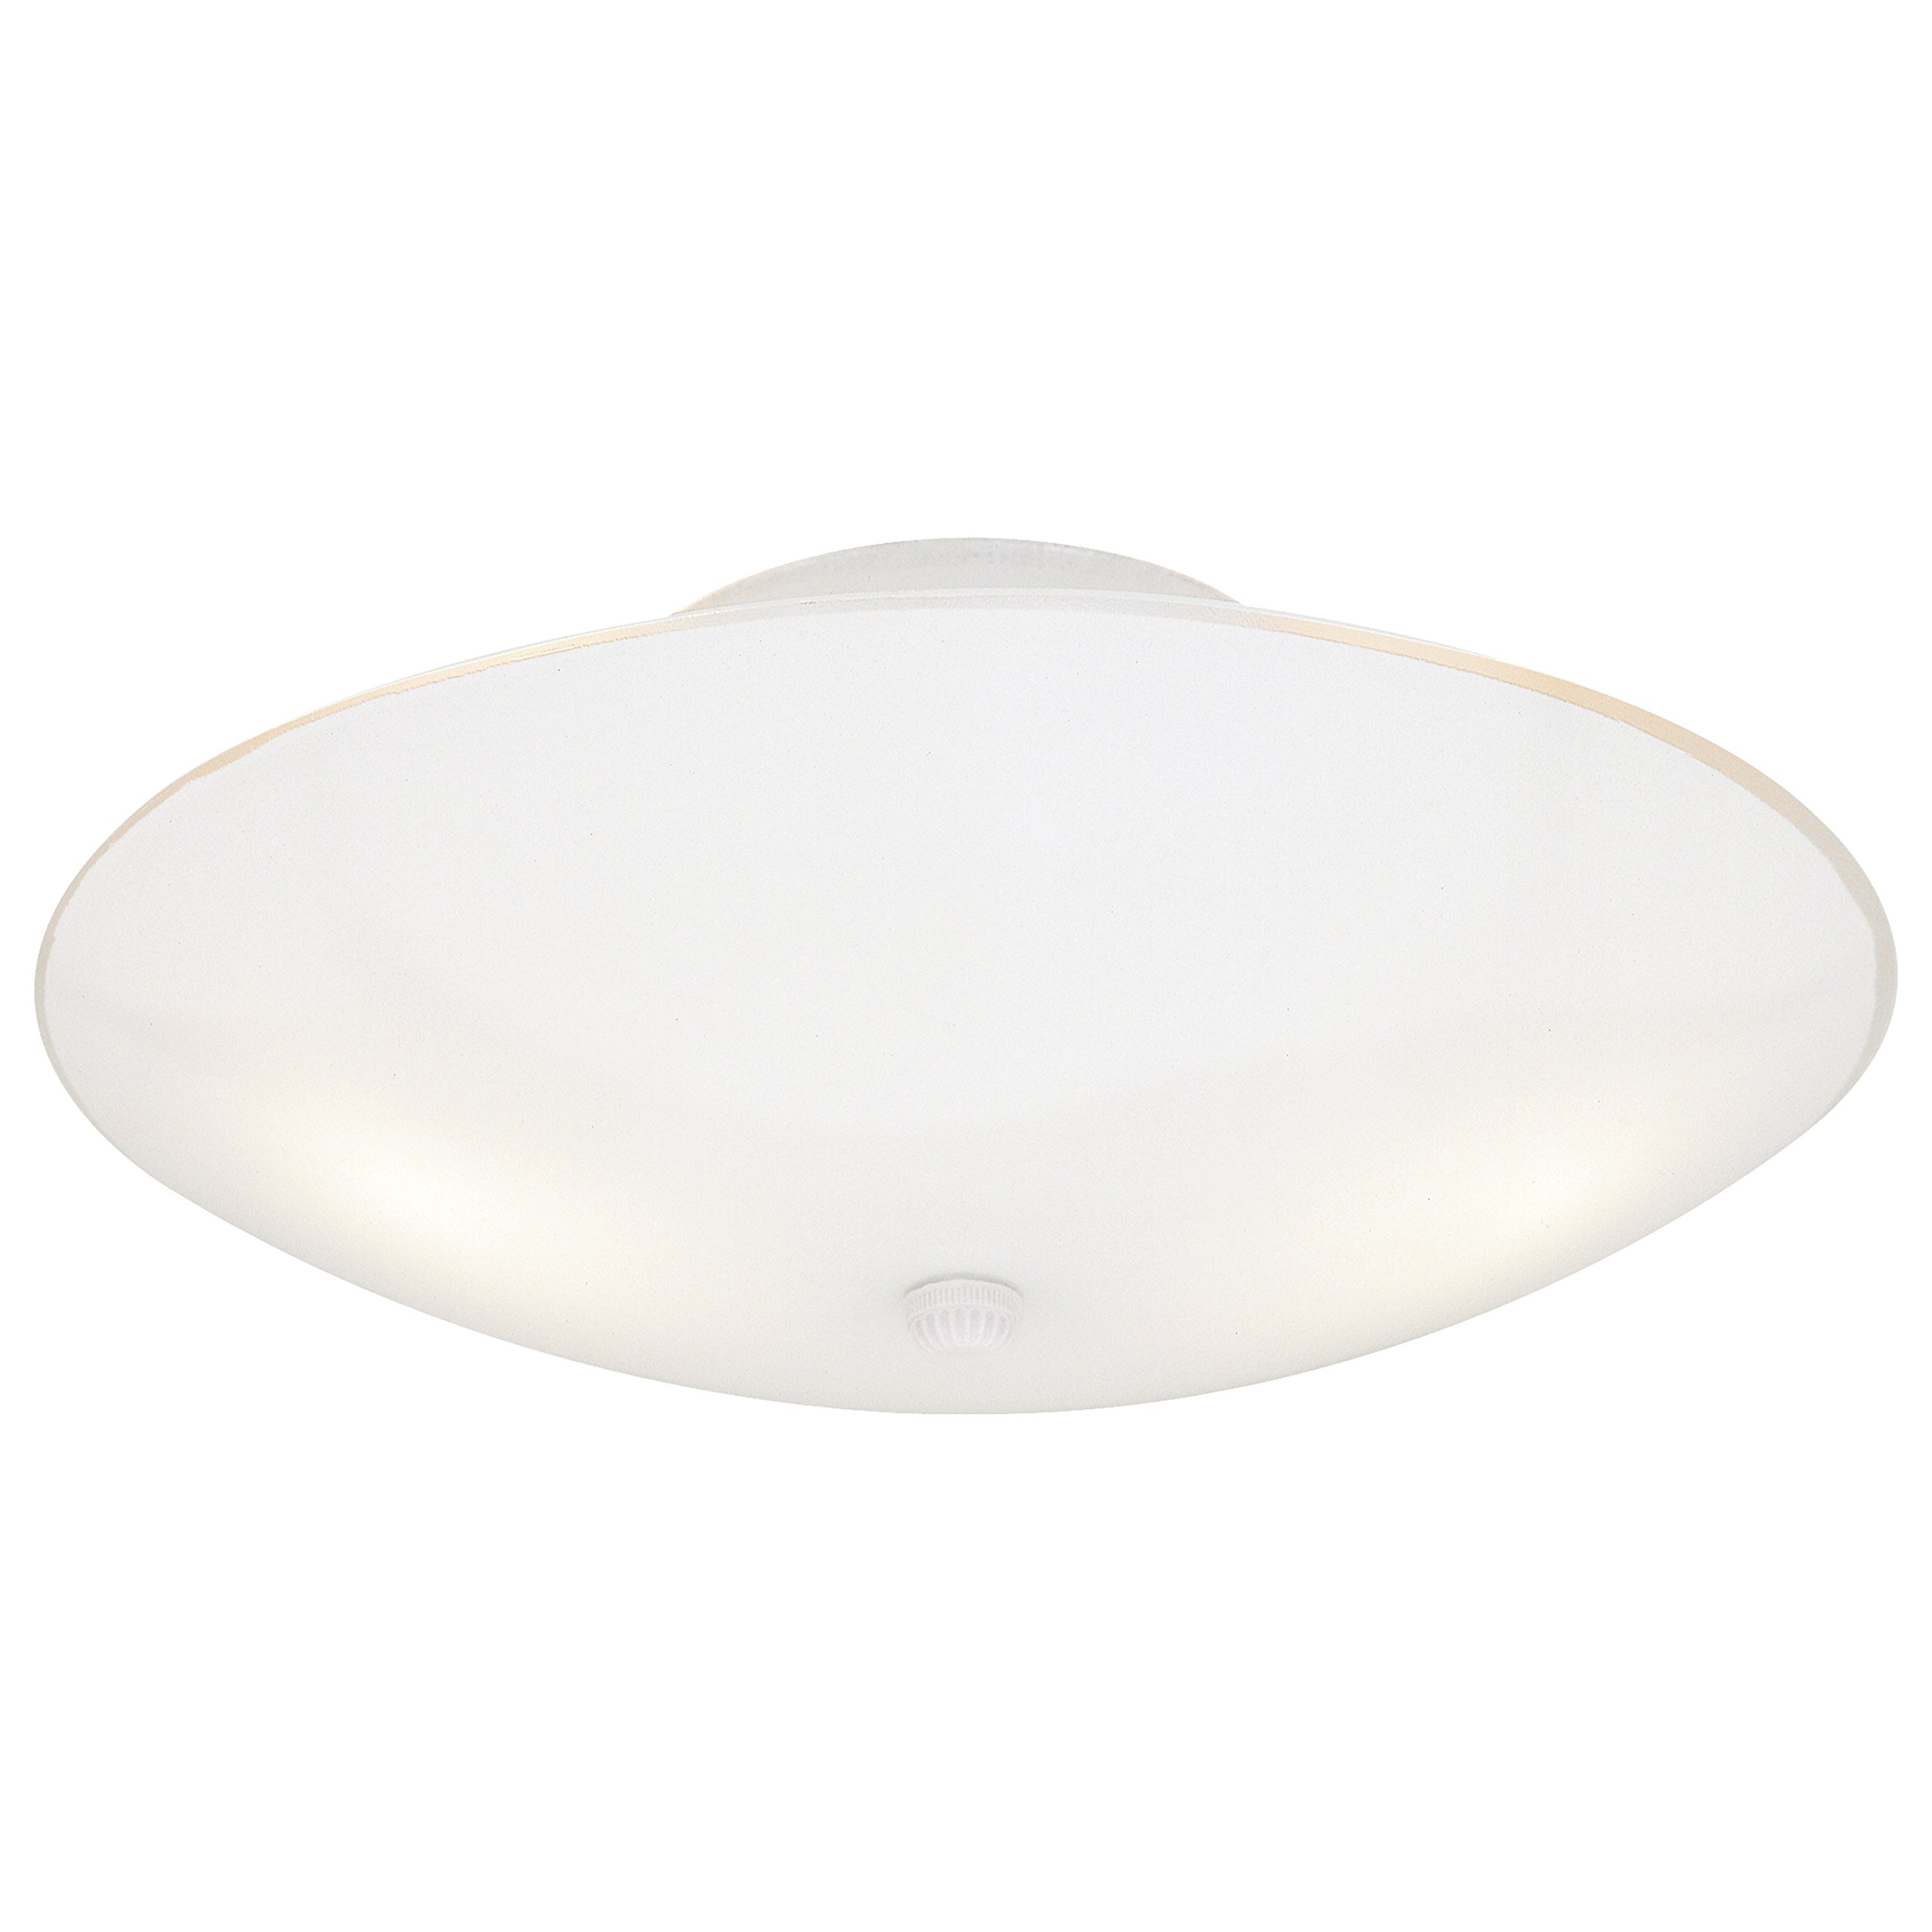 Westinghouse 6624200 Two-Light Semi-Flush-Mount Interior Ceiling Fixture, White Finish with White Glass